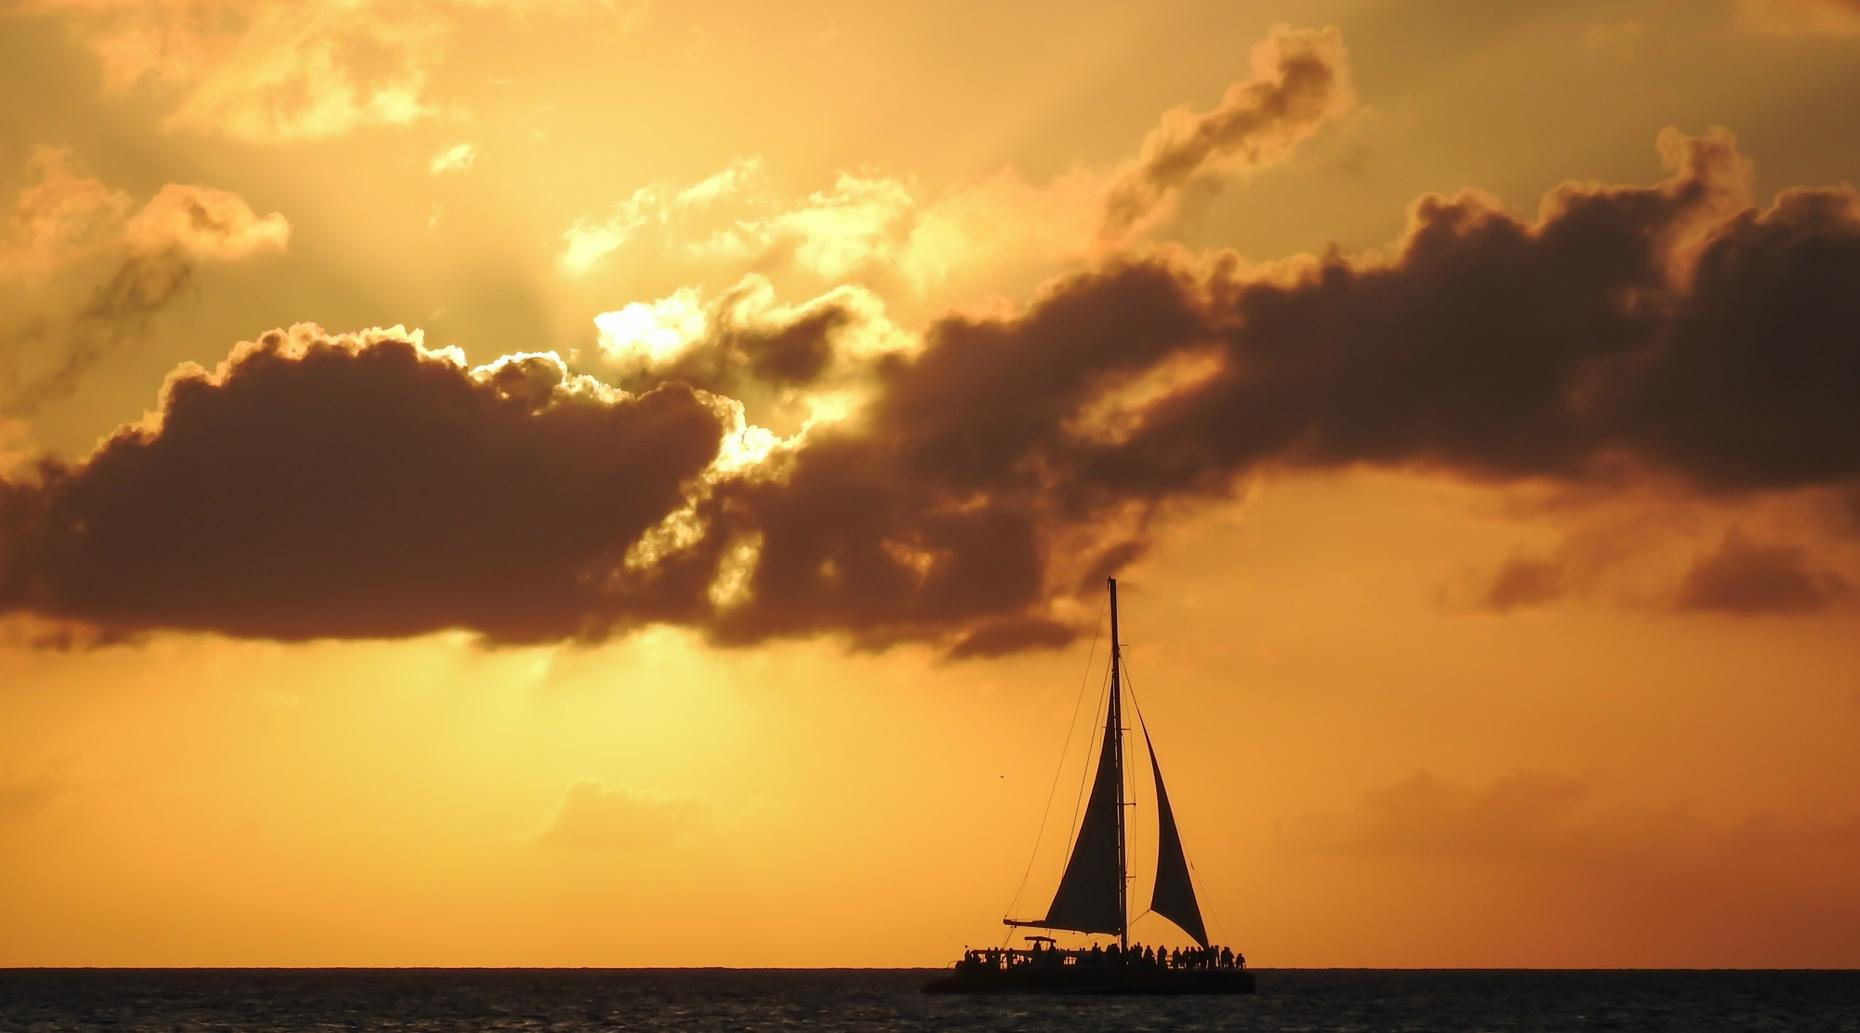 Sunset Summer Sail from San Diego